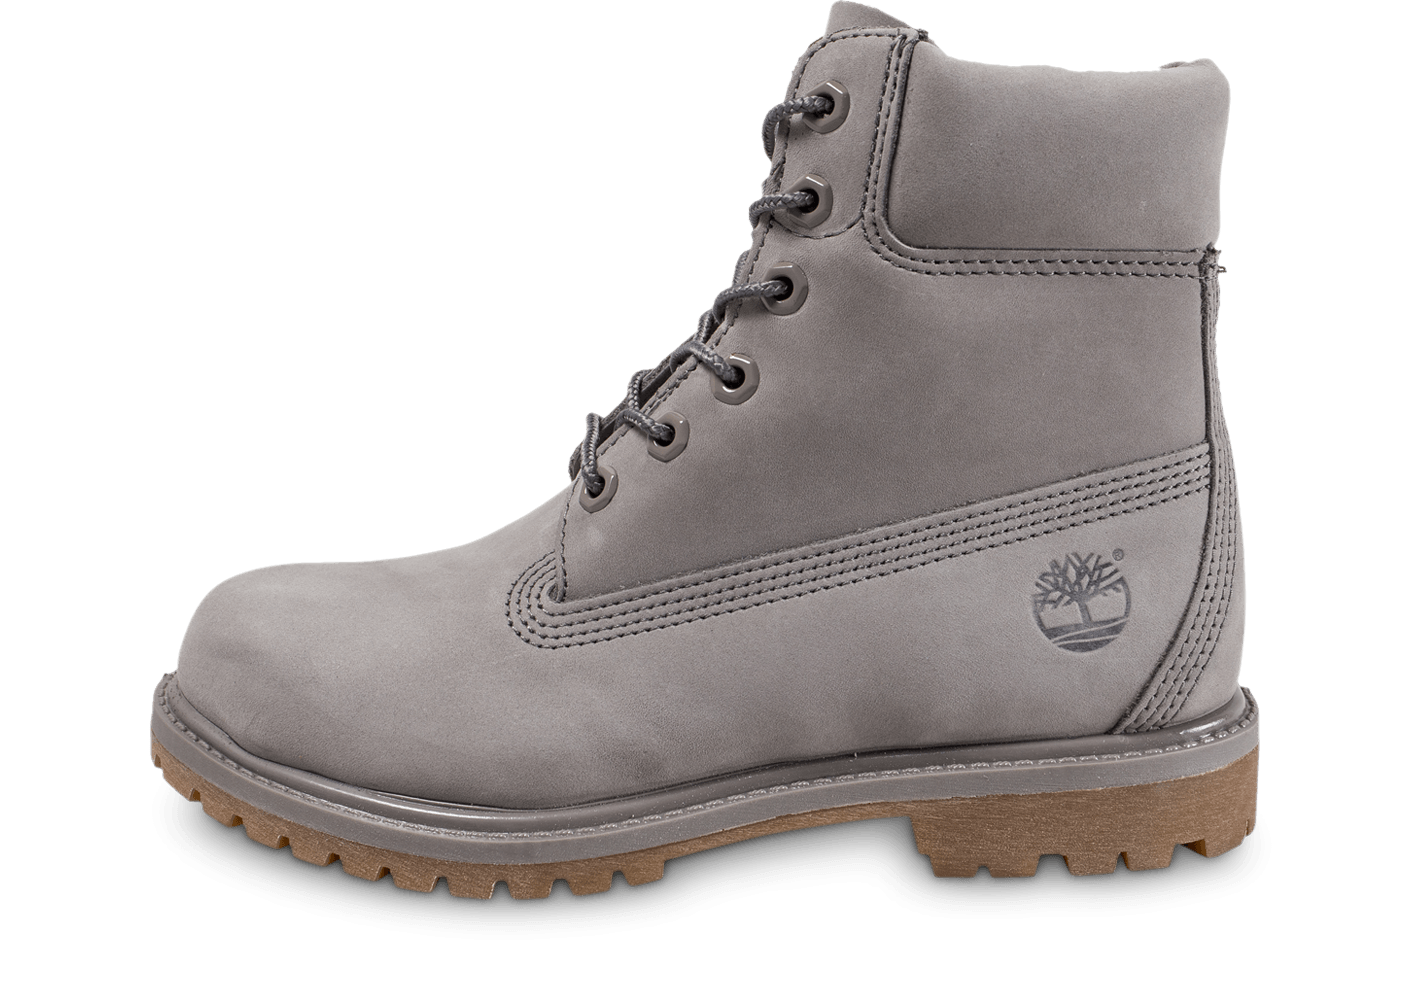 timberland 6 inch premium boots grise chaussures femme chausport. Black Bedroom Furniture Sets. Home Design Ideas